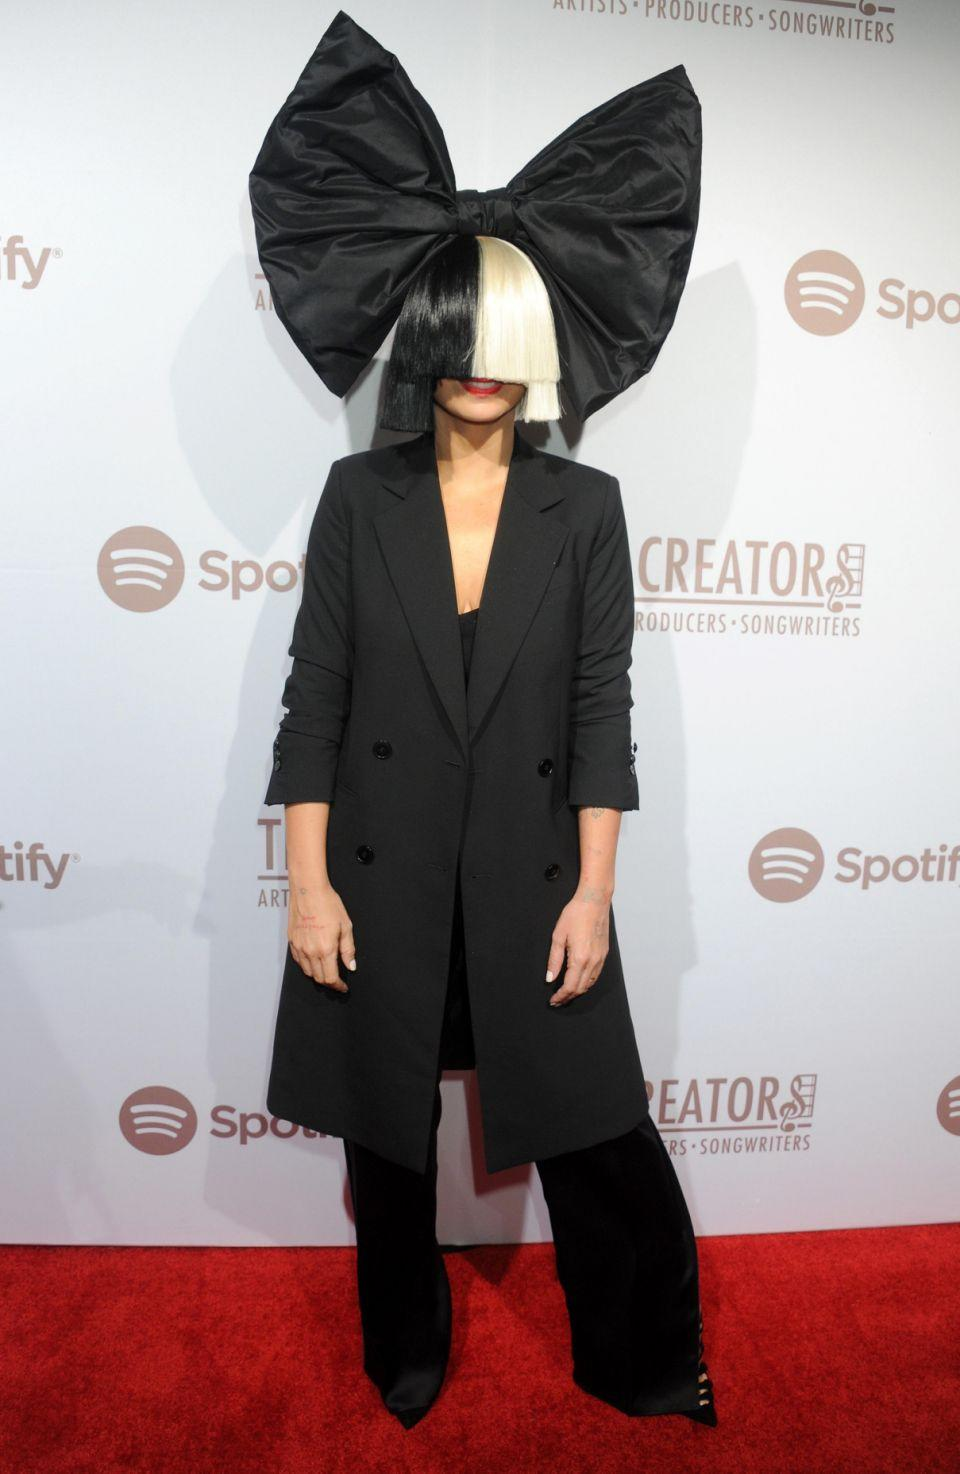 She never shows her face but Sia (here at a red carpet event in February 2016) has leaked her own nude photo. Source: Getty